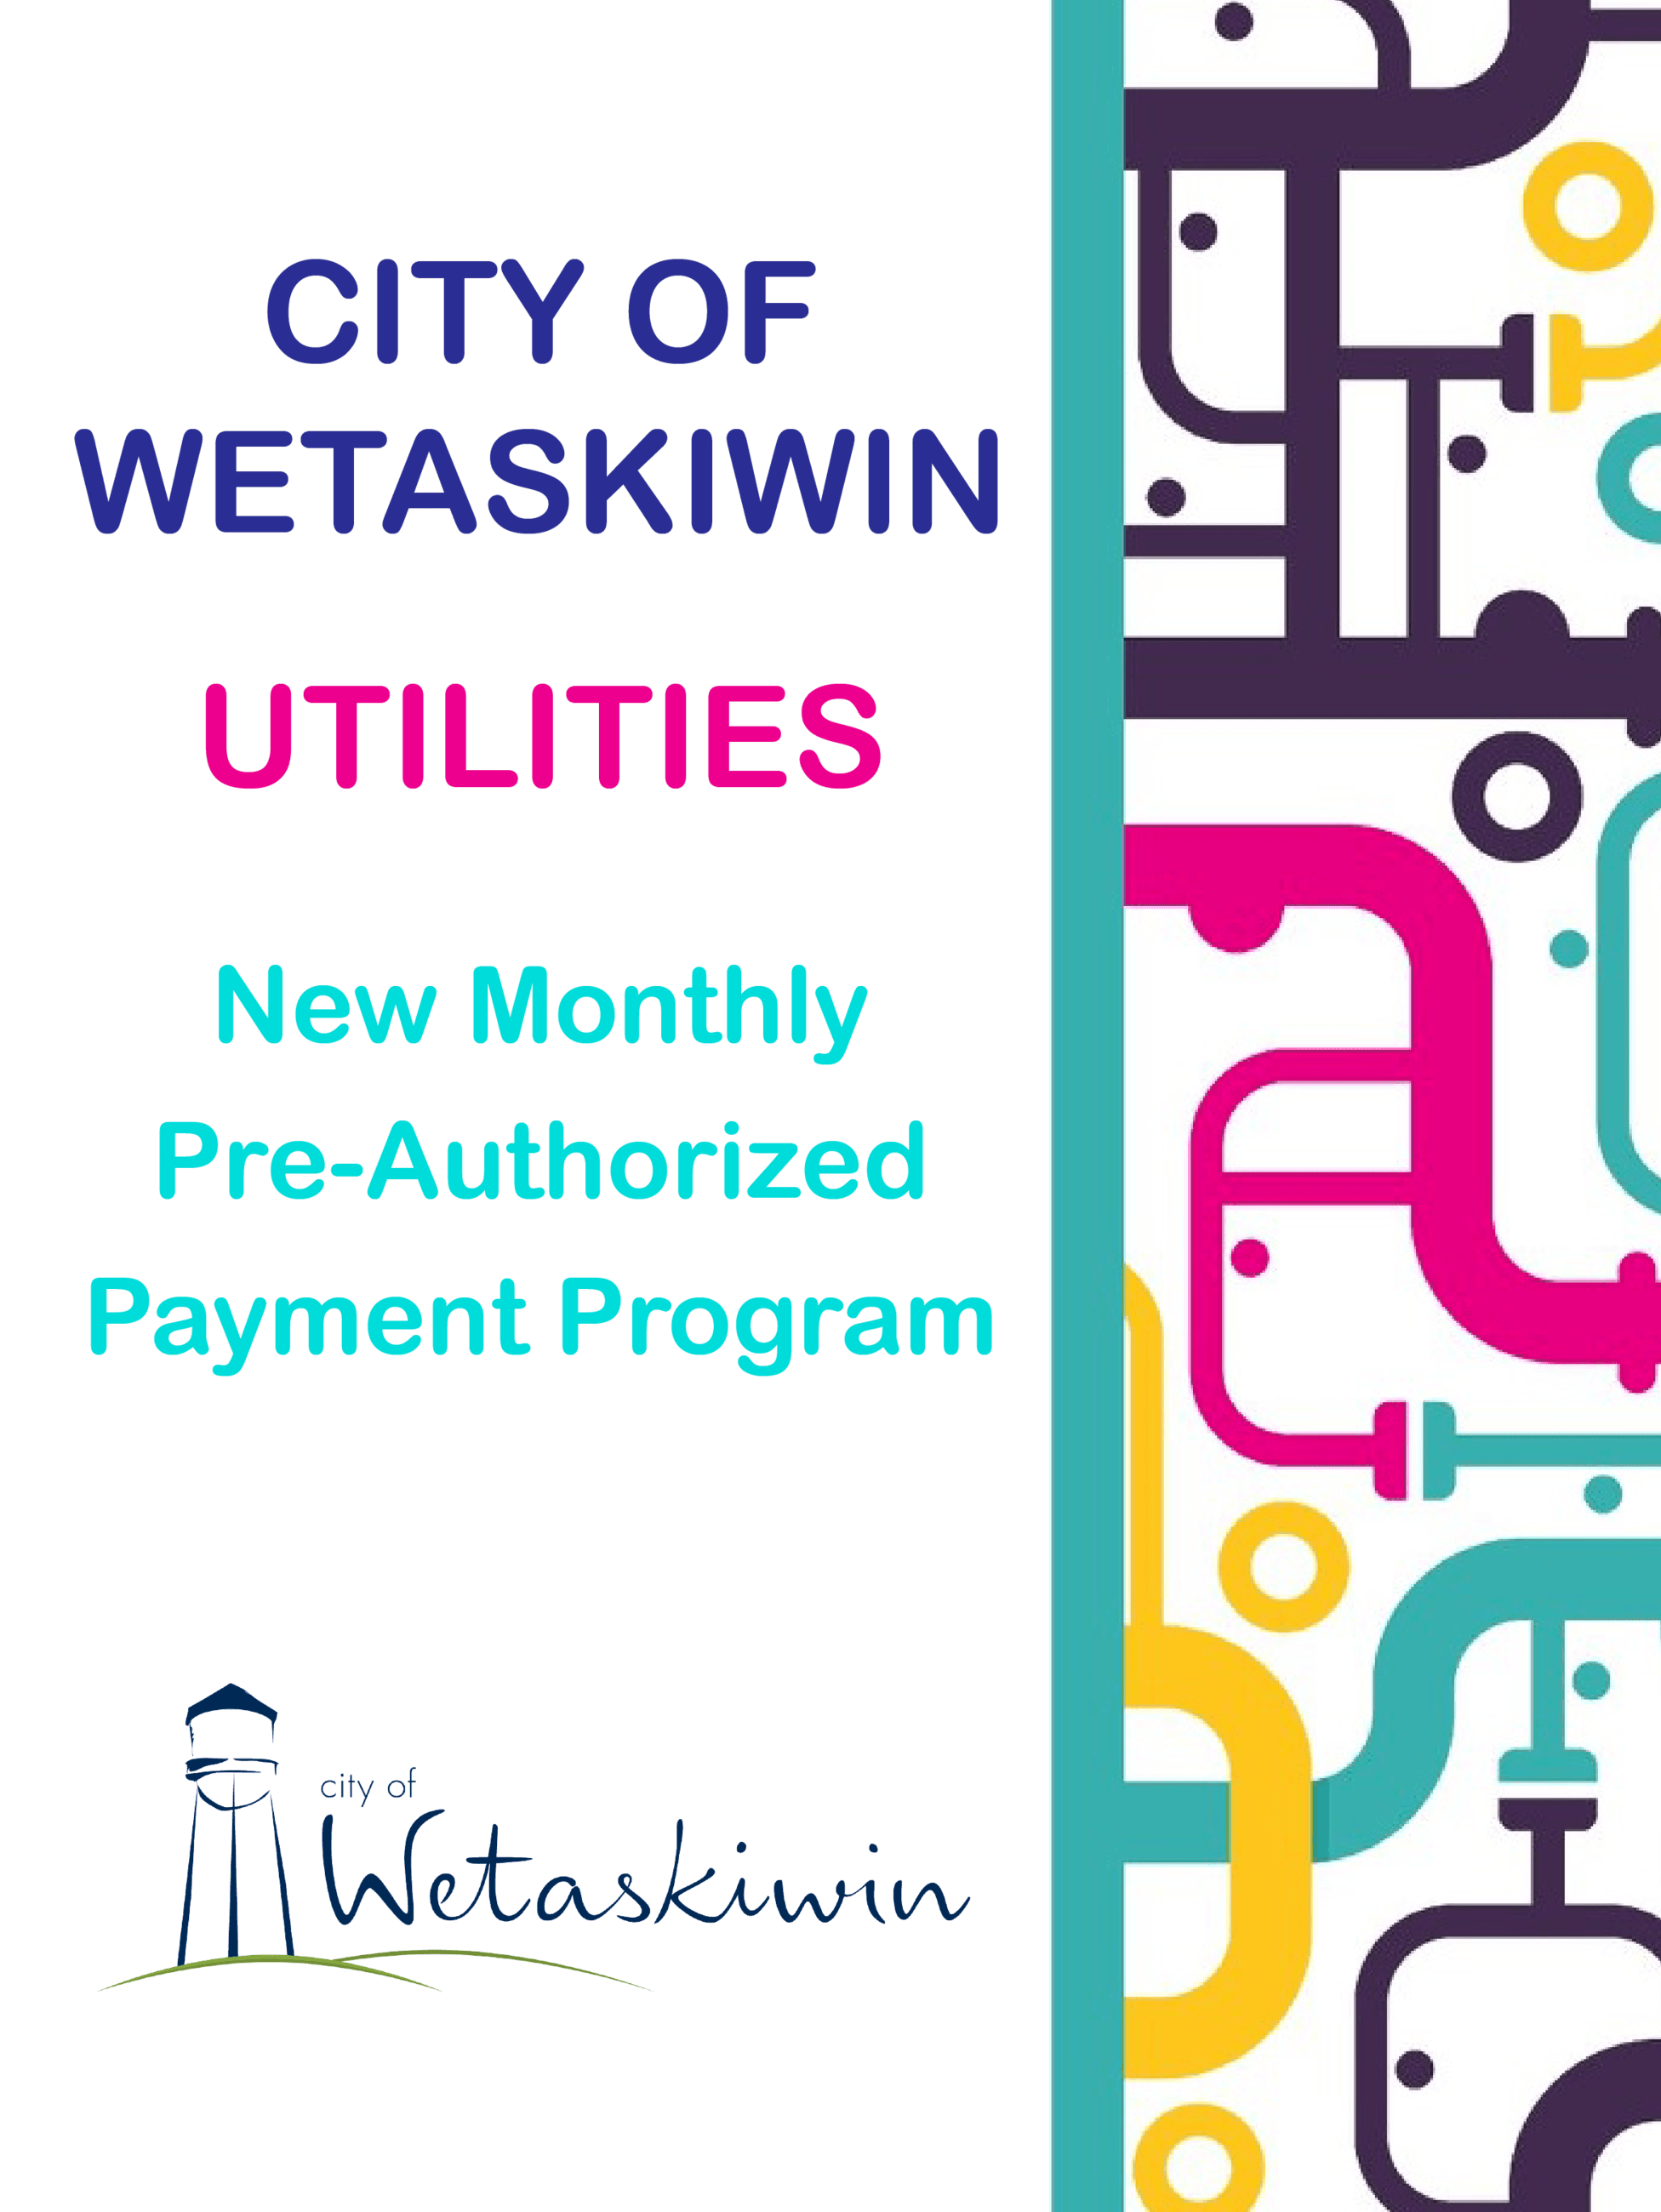 Utilities - New Monthly PAP - newsflash-01